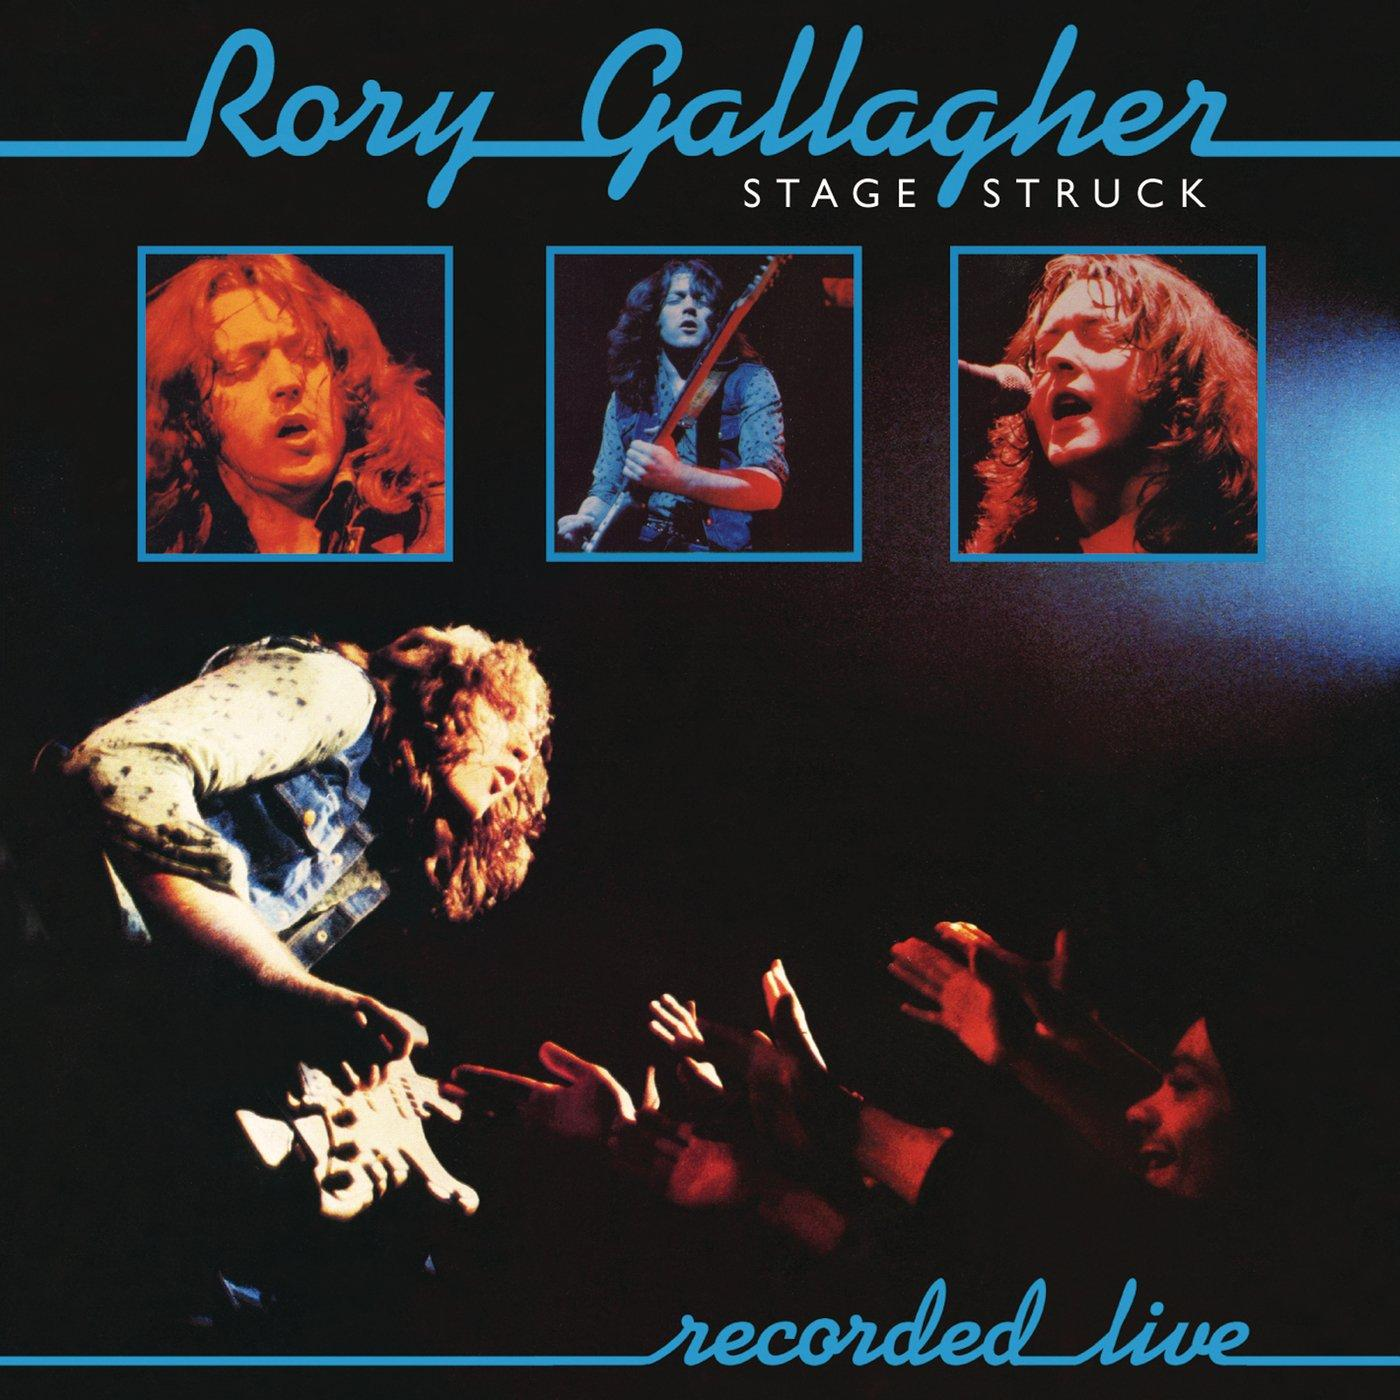 Les N'importe-Quoi d'Ahasverus : RORY GALLAGHER, Stage Truck (1980)